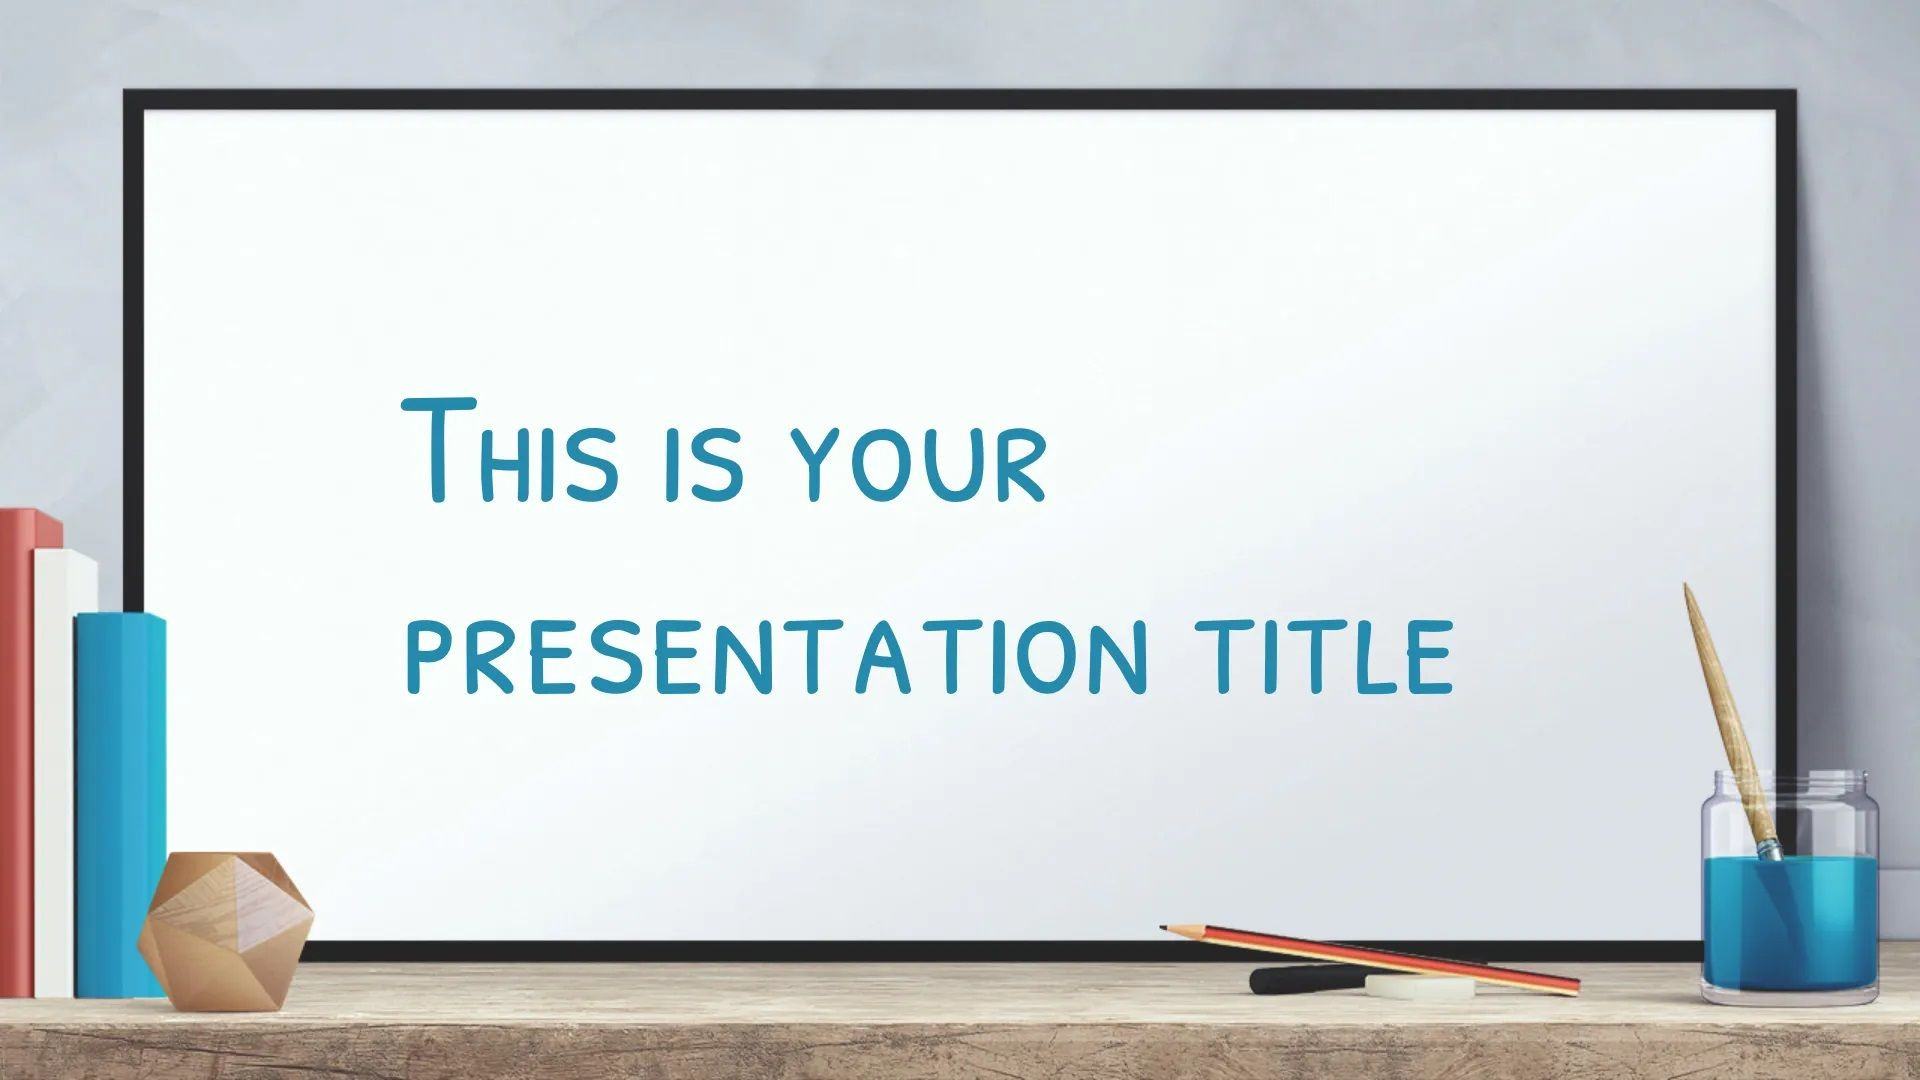 008 Archaicawful Free Education Powerpoint Template Photo  Templates Physical Download Downloadable For Teacher Design1920